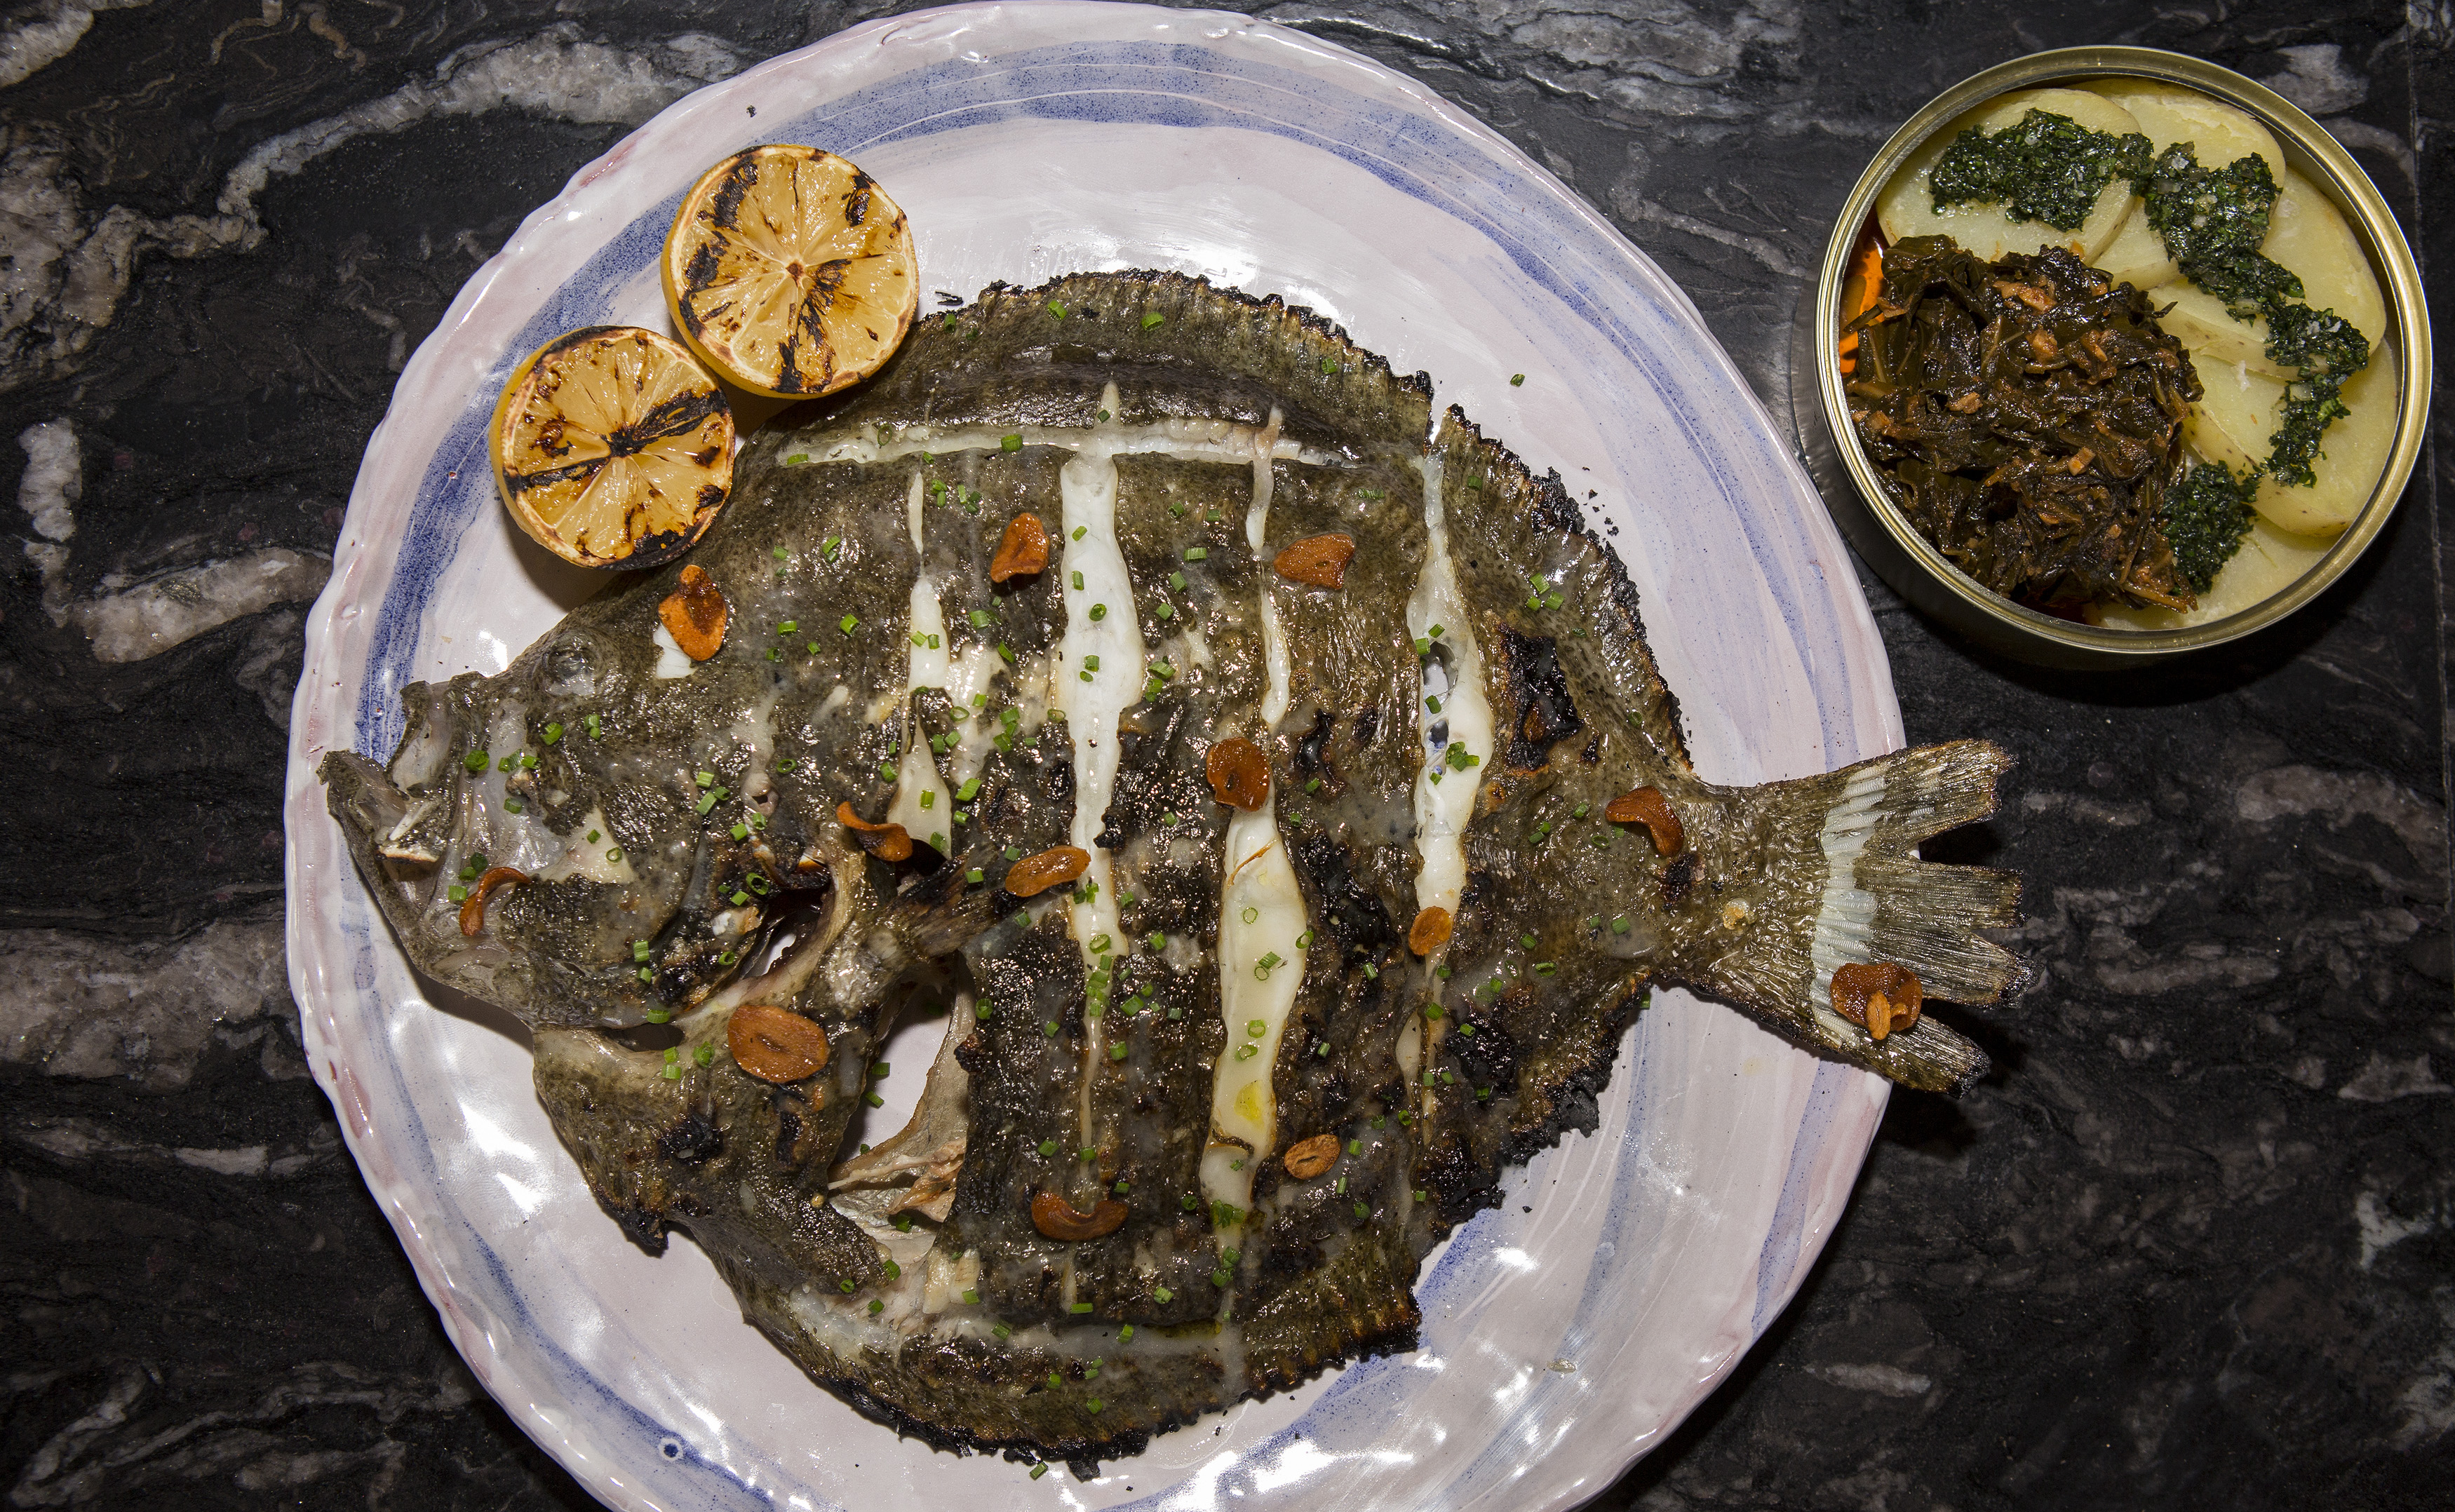 A large grilled whole fish on an intricate plate with a sides in a tin can.